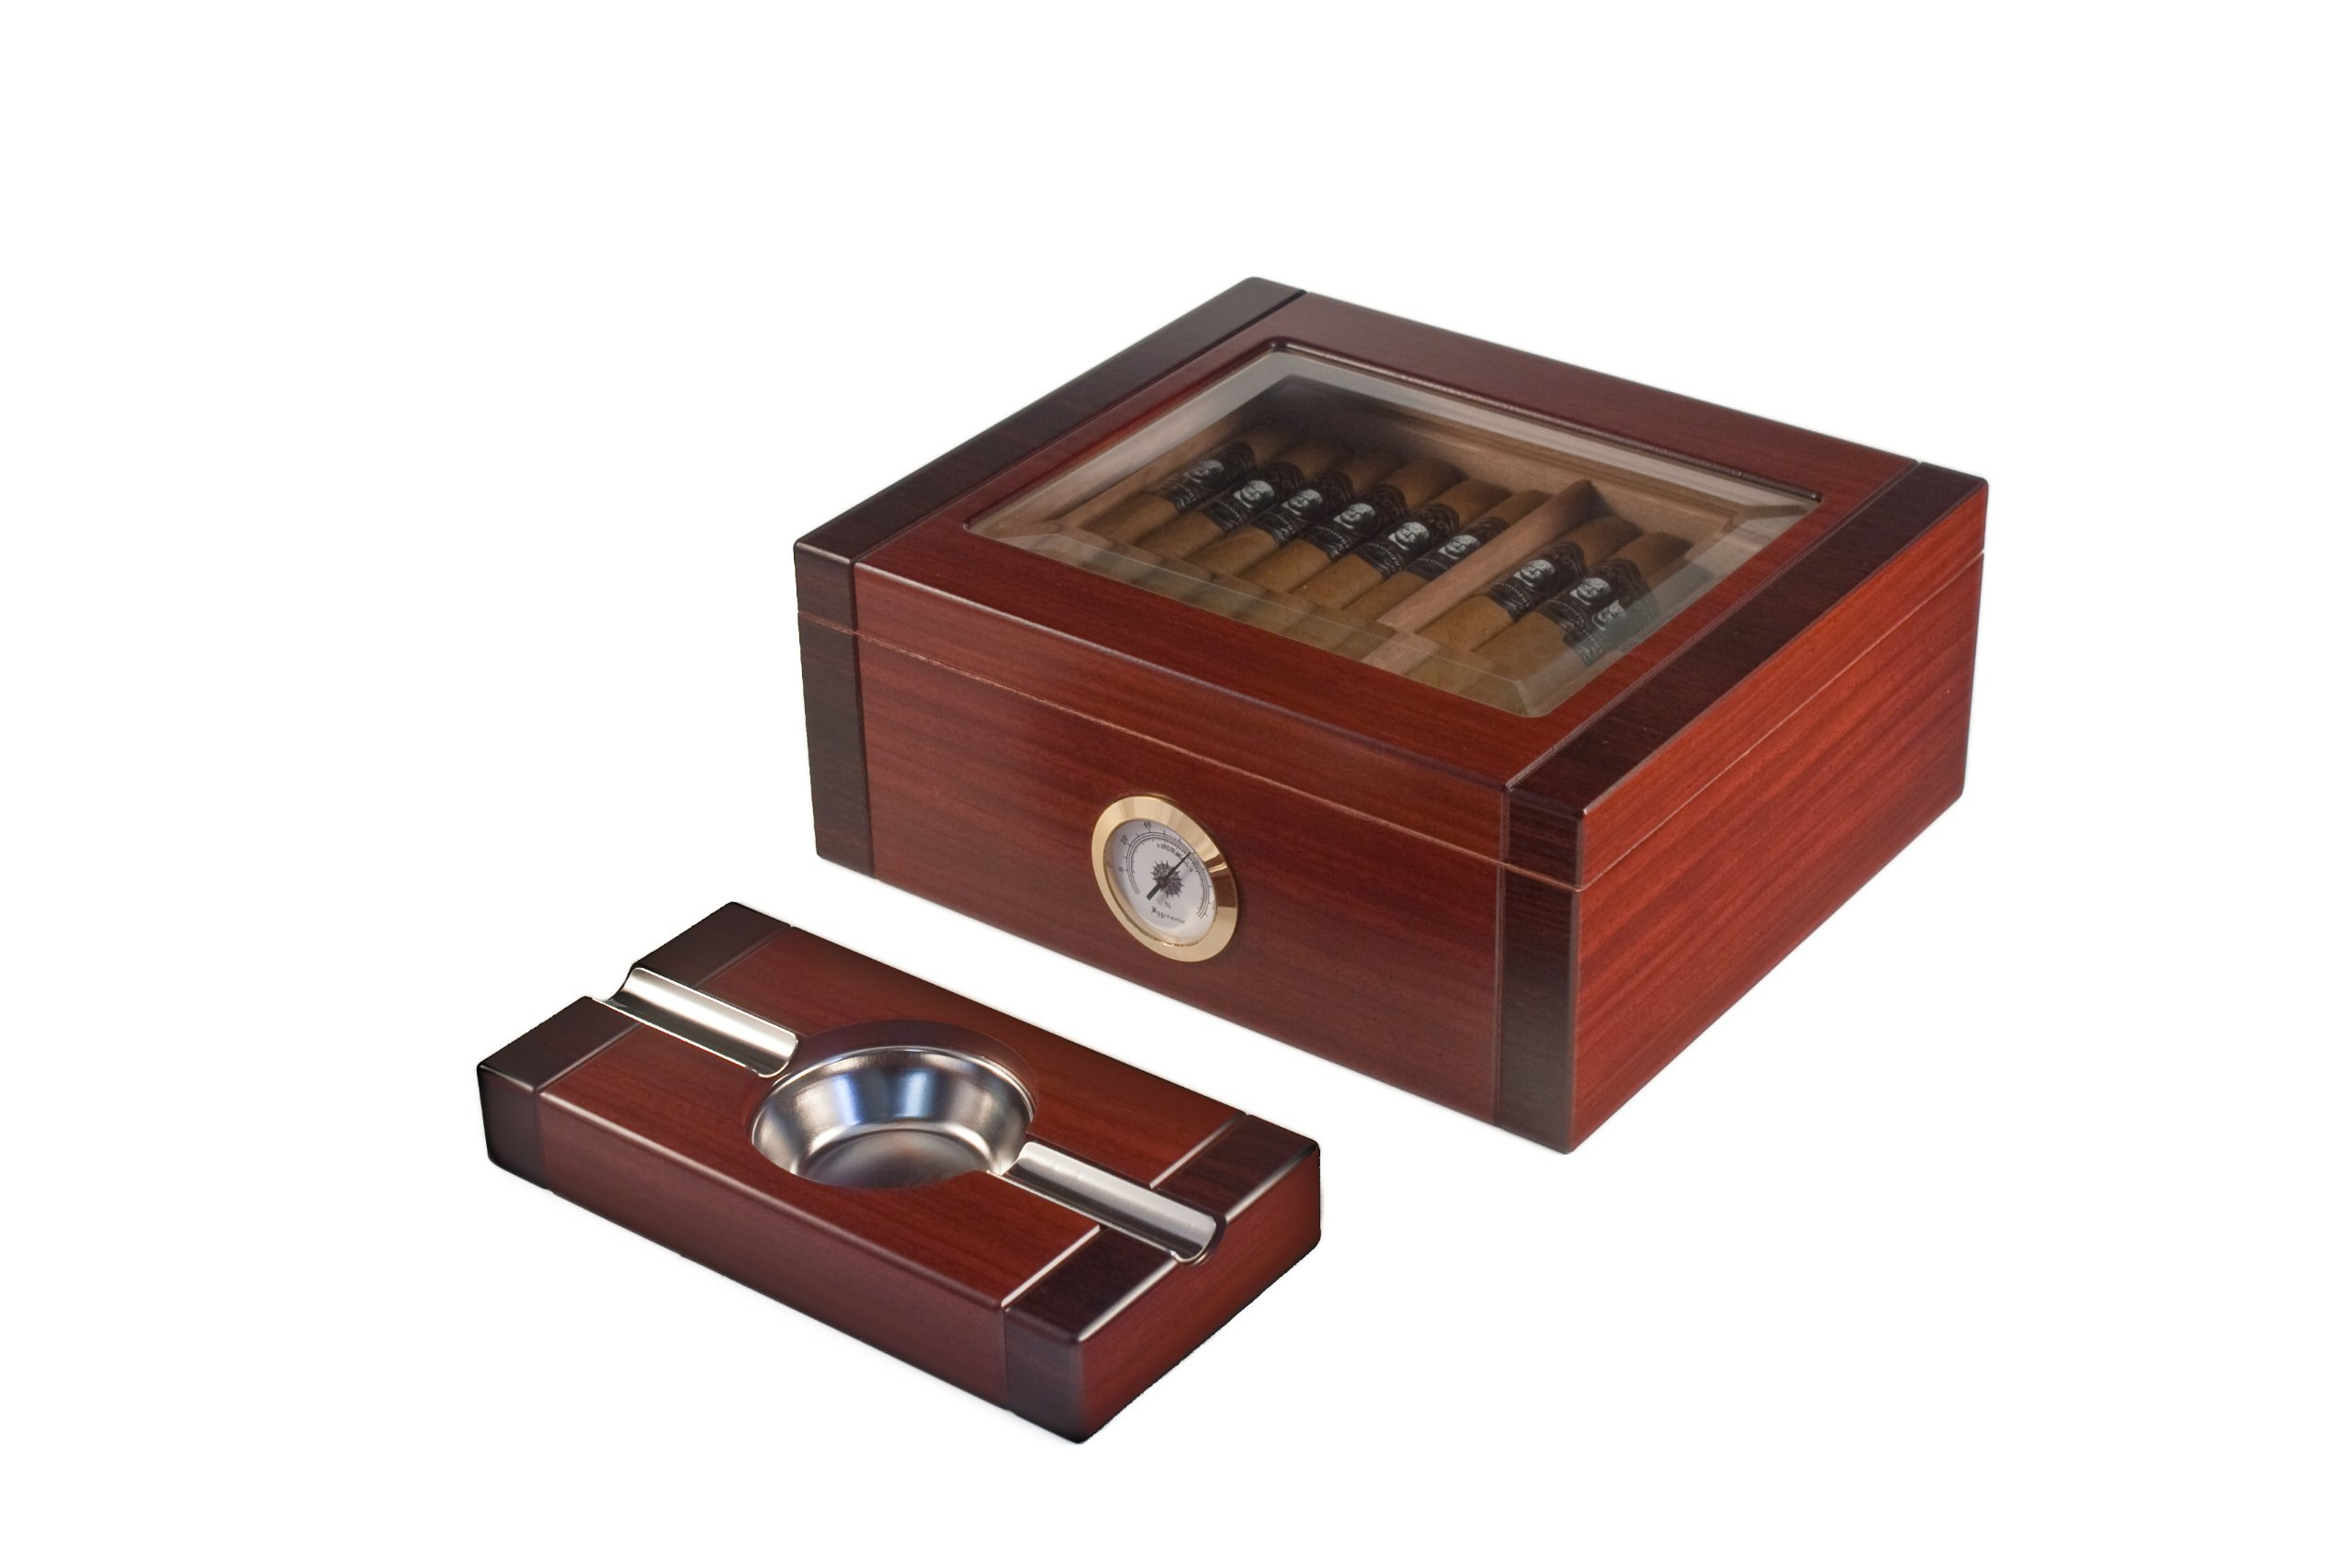 Orleans Group Supreme Humidor With Matching Ashtray, Count 20 by Orleans Group